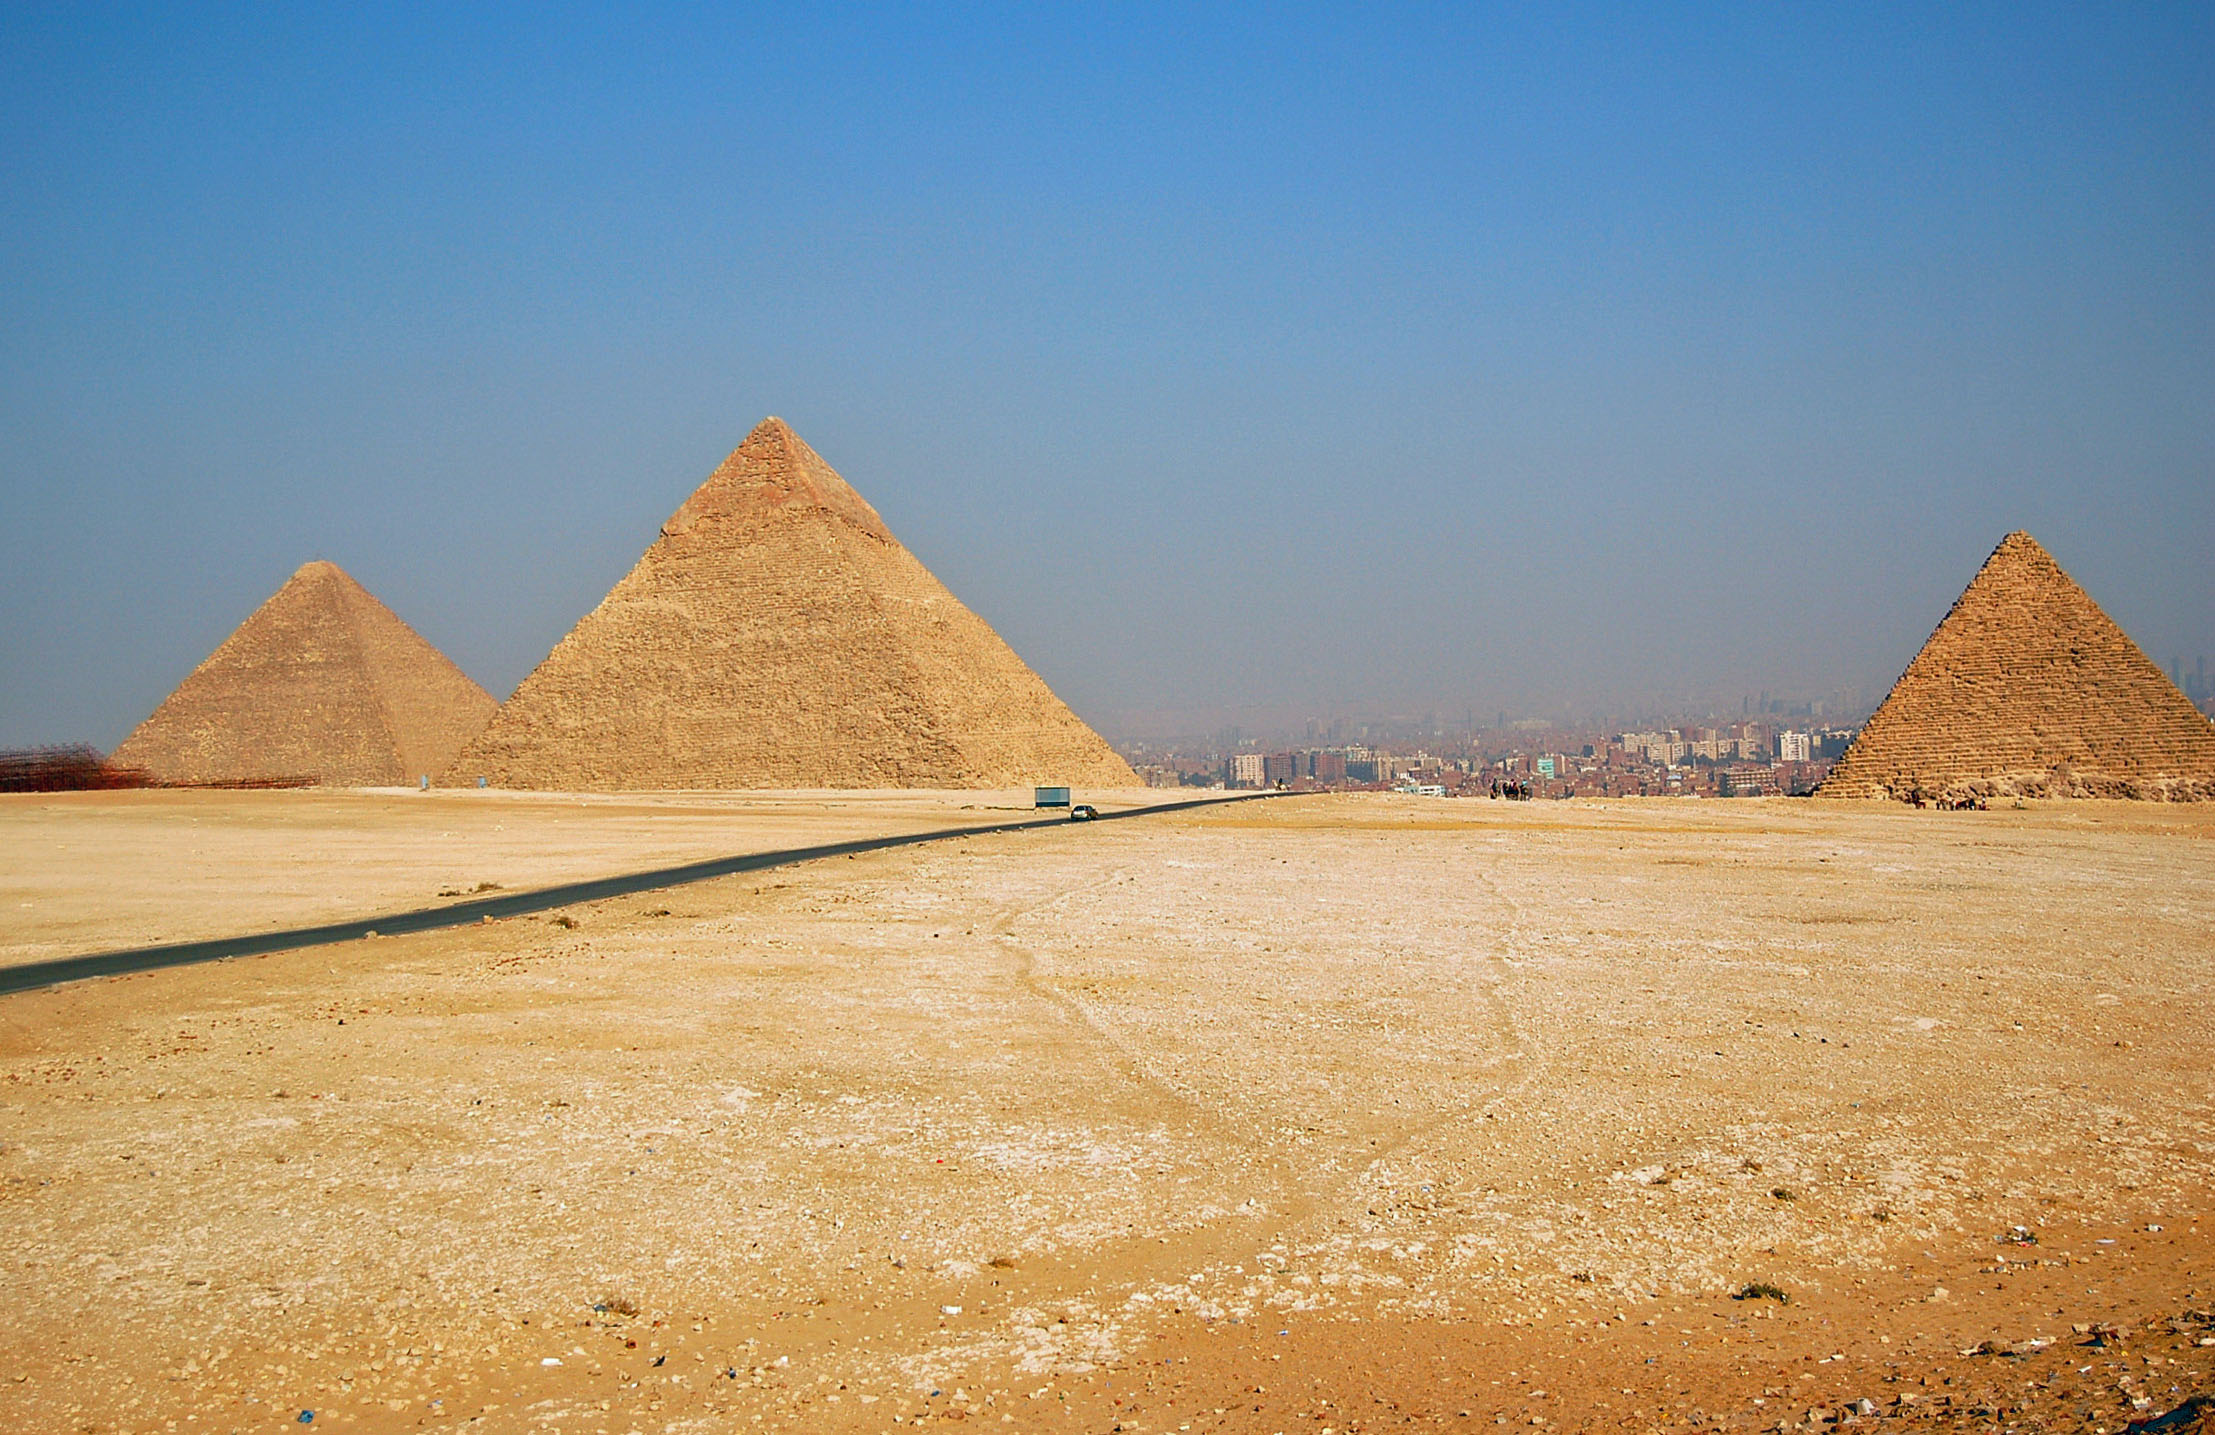 Pyramids of Giza overlooking Cairo. (Submitted photo)